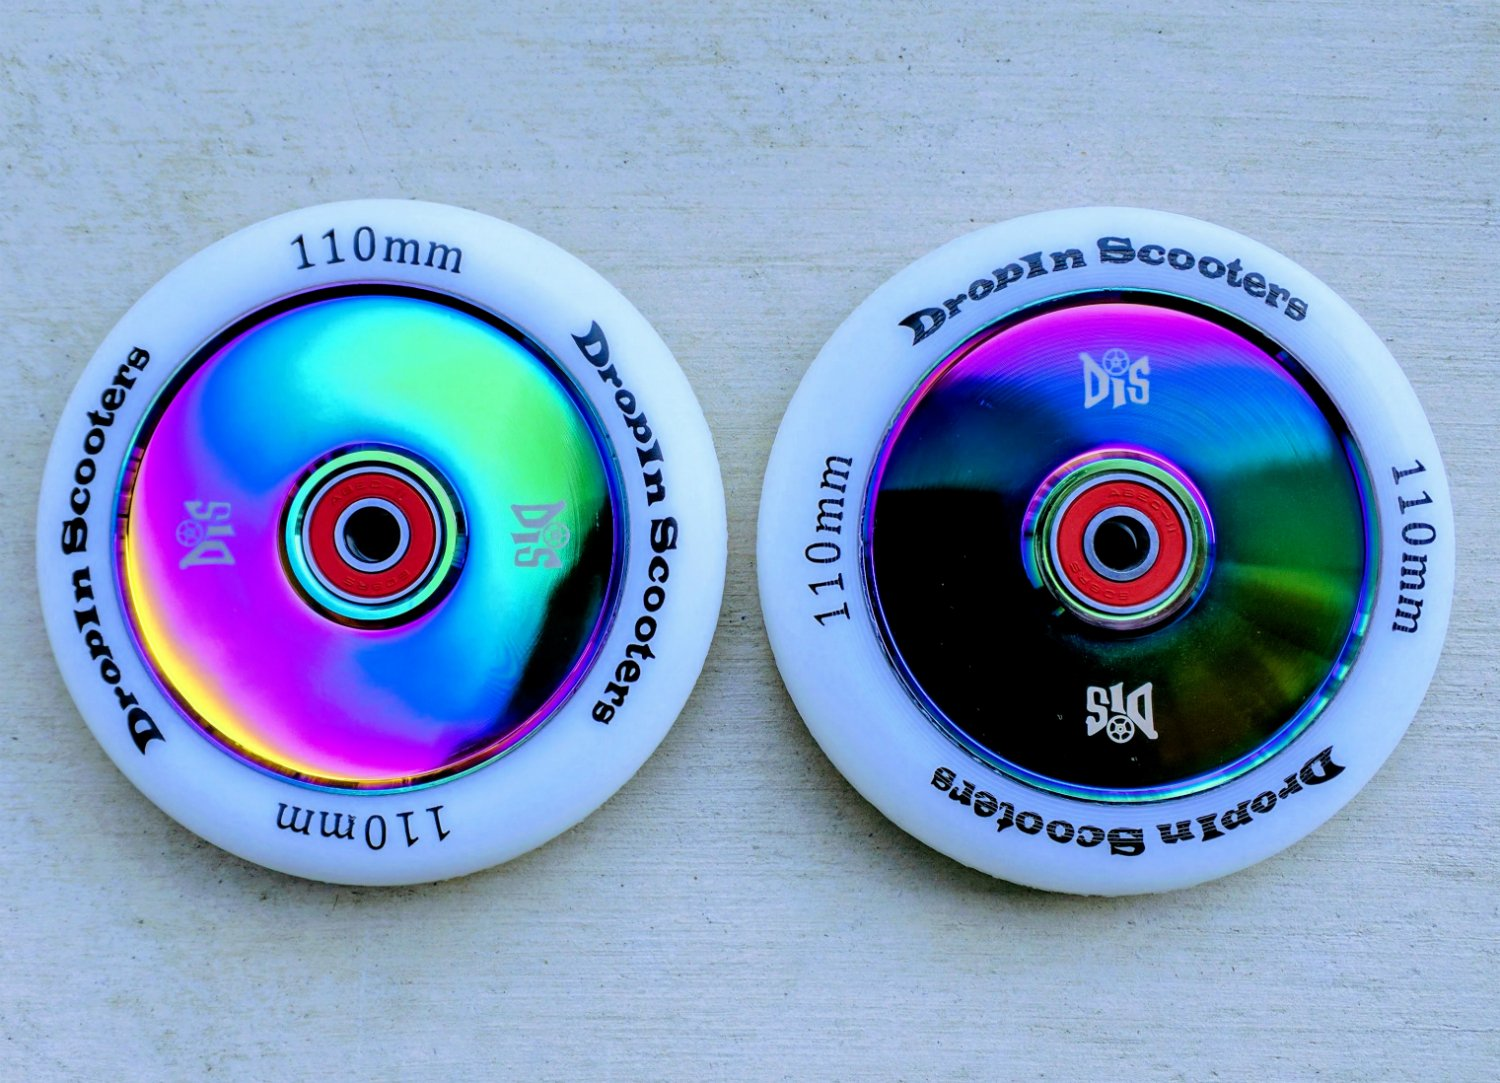 DIS 110mm Hollow Slicks Metal Core Scooter Wheels - 2 Neochrome Wheels with ABEC-11 Bearings and spacers Installed